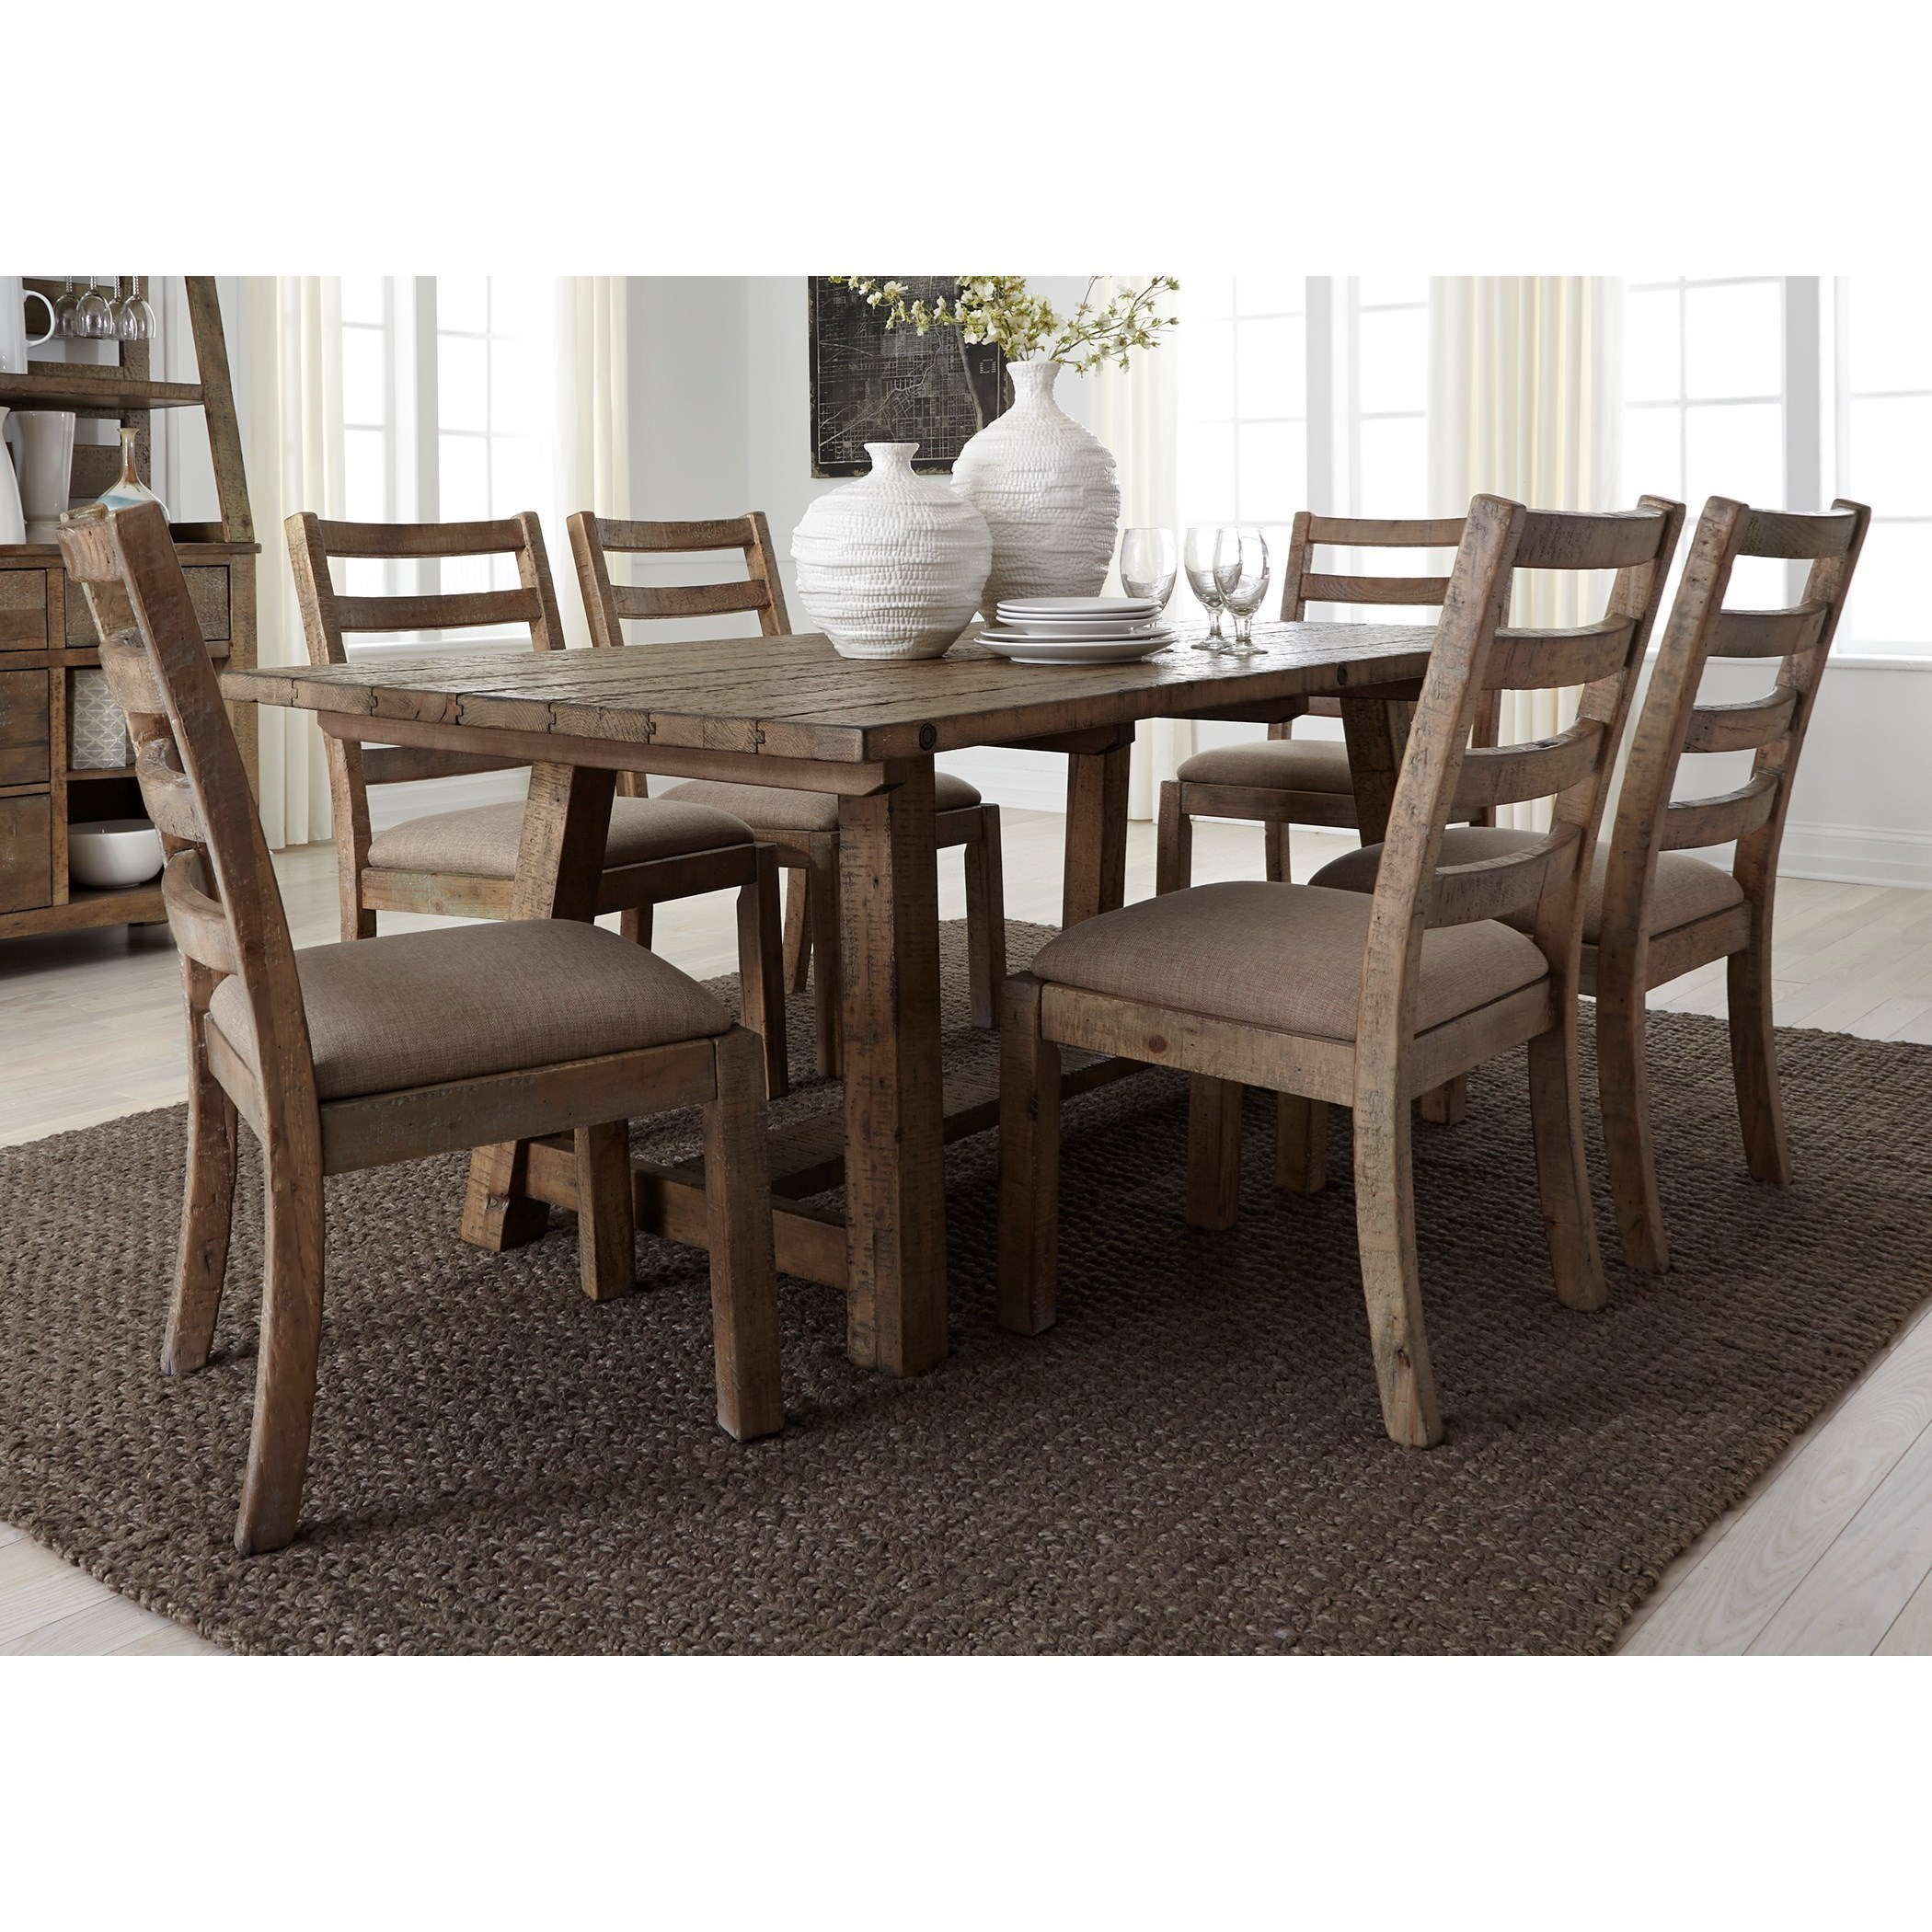 liberty dining chairs the ugly chair tupelo ms hours furniture prescott valley rustic 7 piece 77 trestle table set